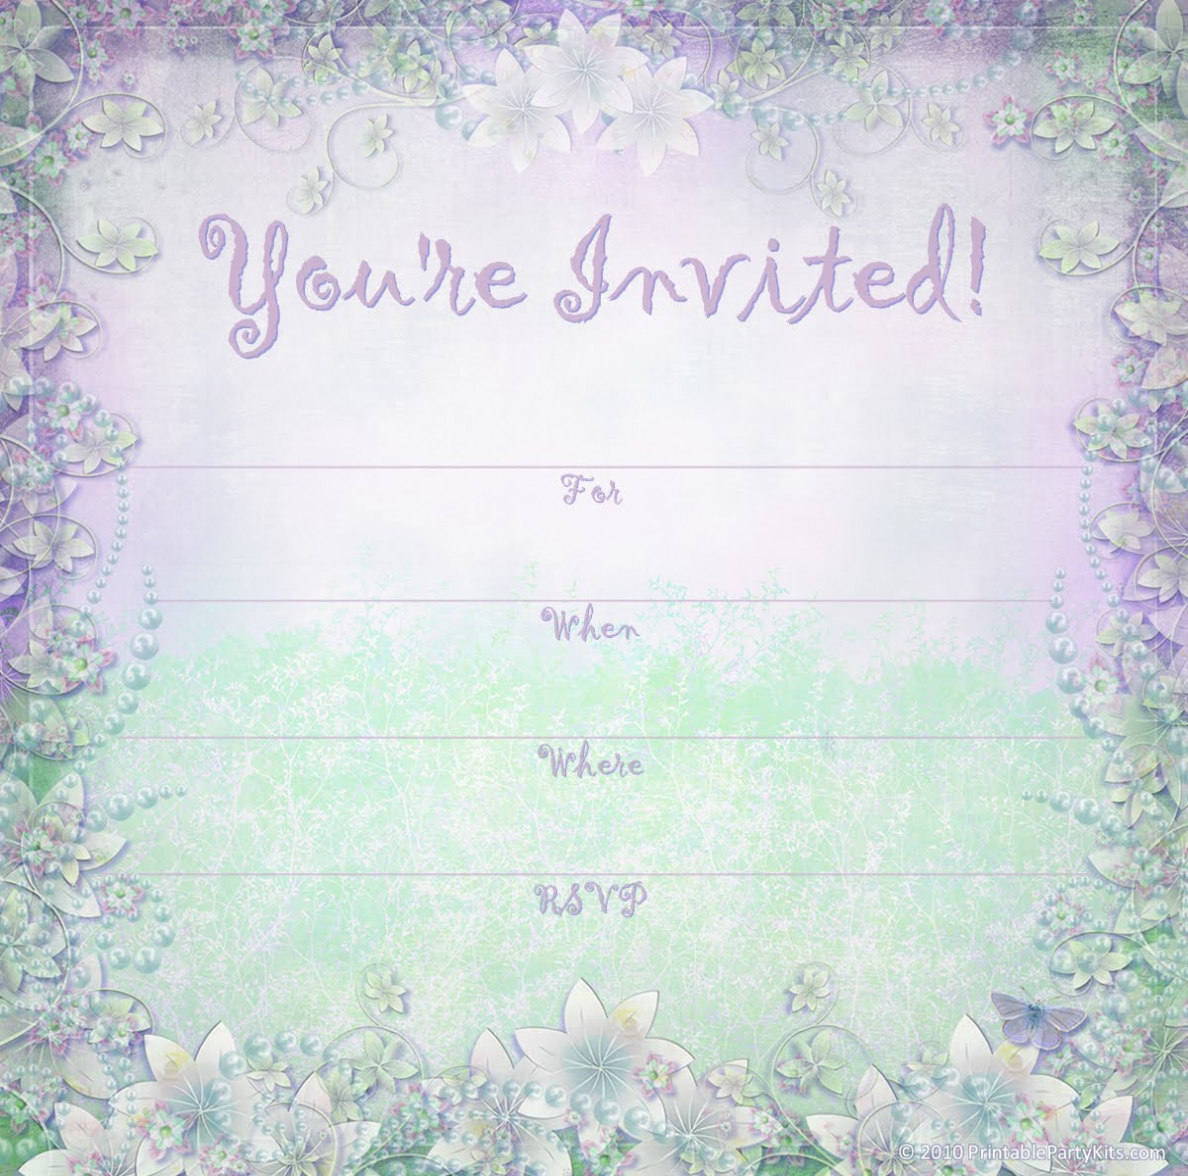 free printable 16th birthday party invitation templates ; free-printable-16th-birthday-party-invitation-templates-16th-birthday-invitations-templates